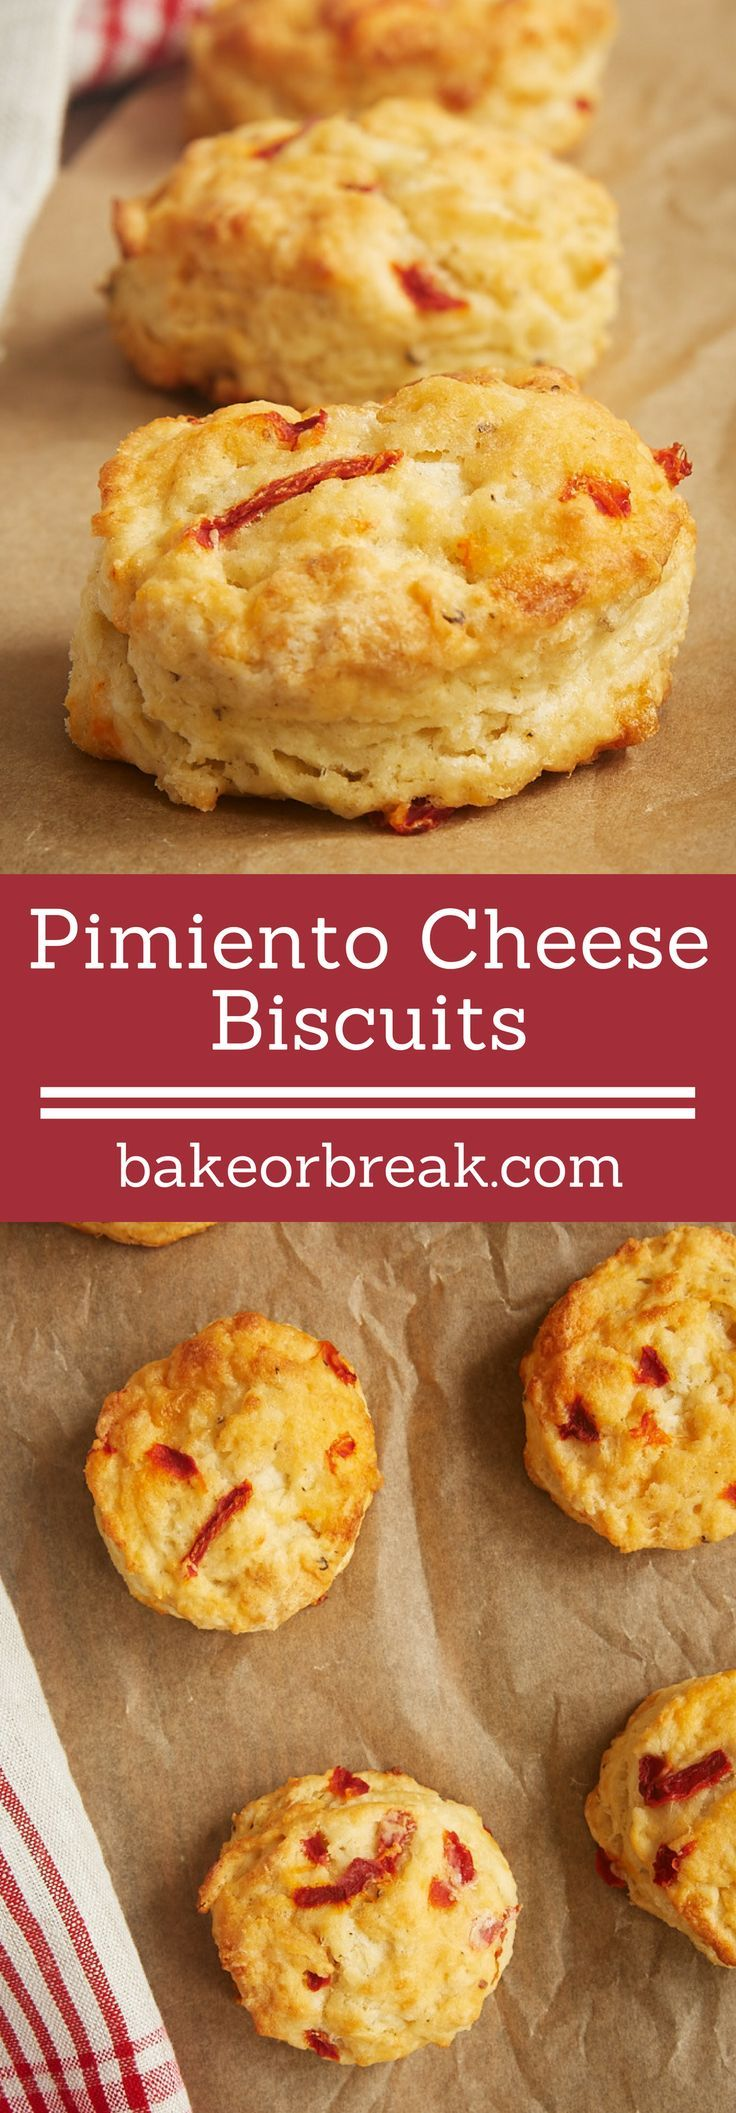 The cheesy, mildly spicy flavor of Pimiento Cheese Biscuits makes them a great companion for so many meals. Love these! - Bake or Break ~ http://www.bakeorbreak.com